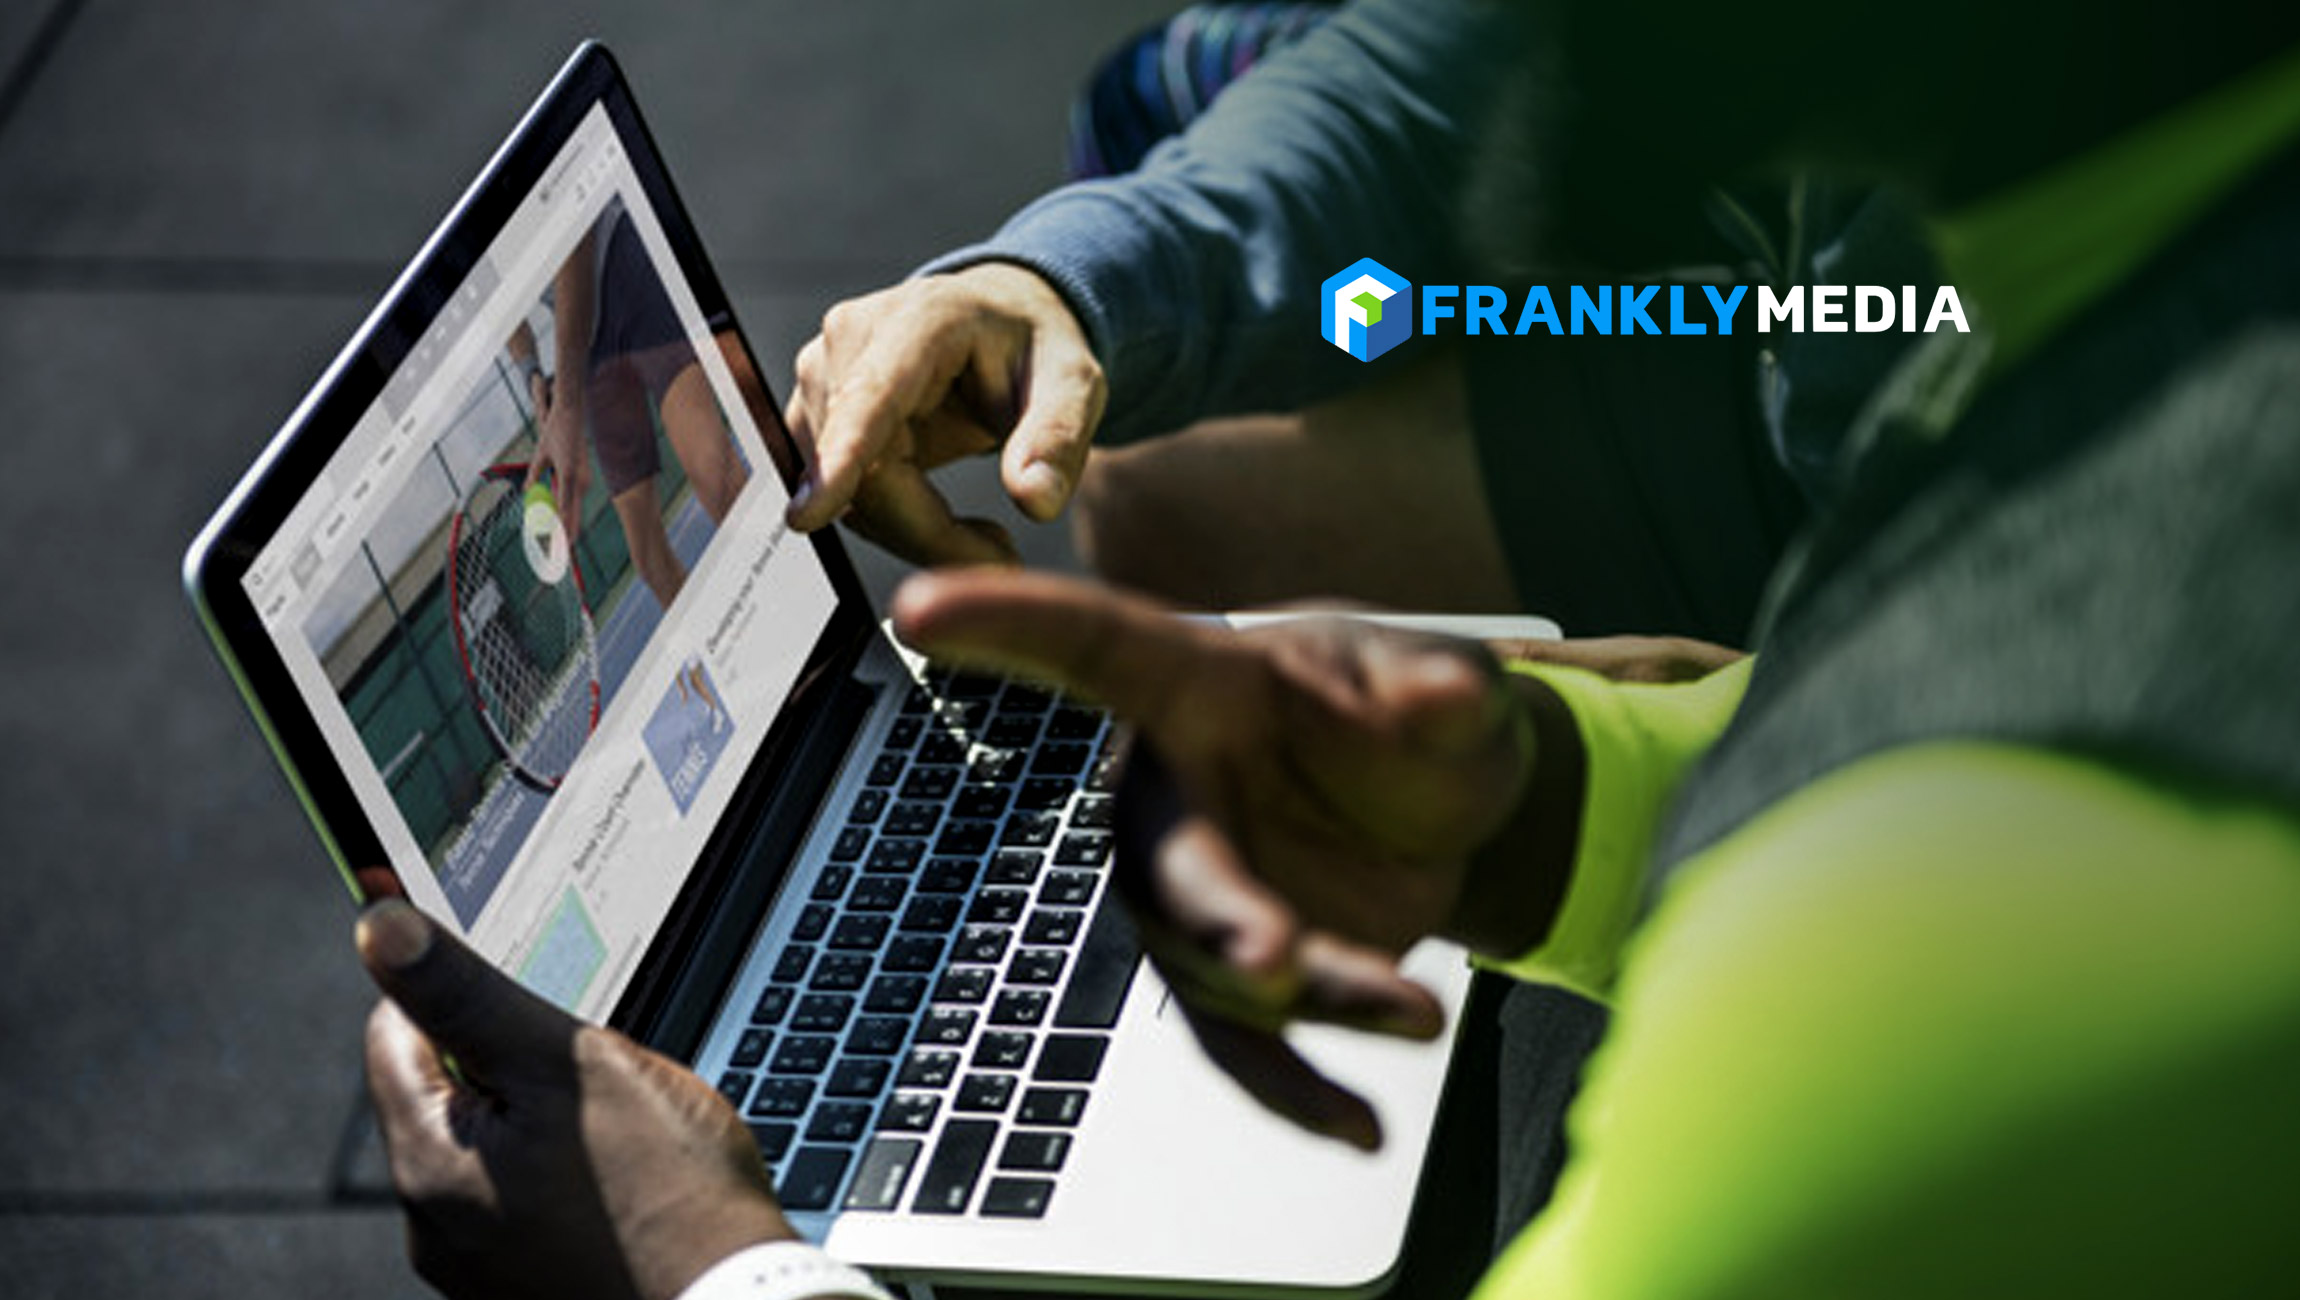 Frankly to Acquire Leading Video Asset Management Platform Vemba to Expand OTT Multiscreen Video Solutions